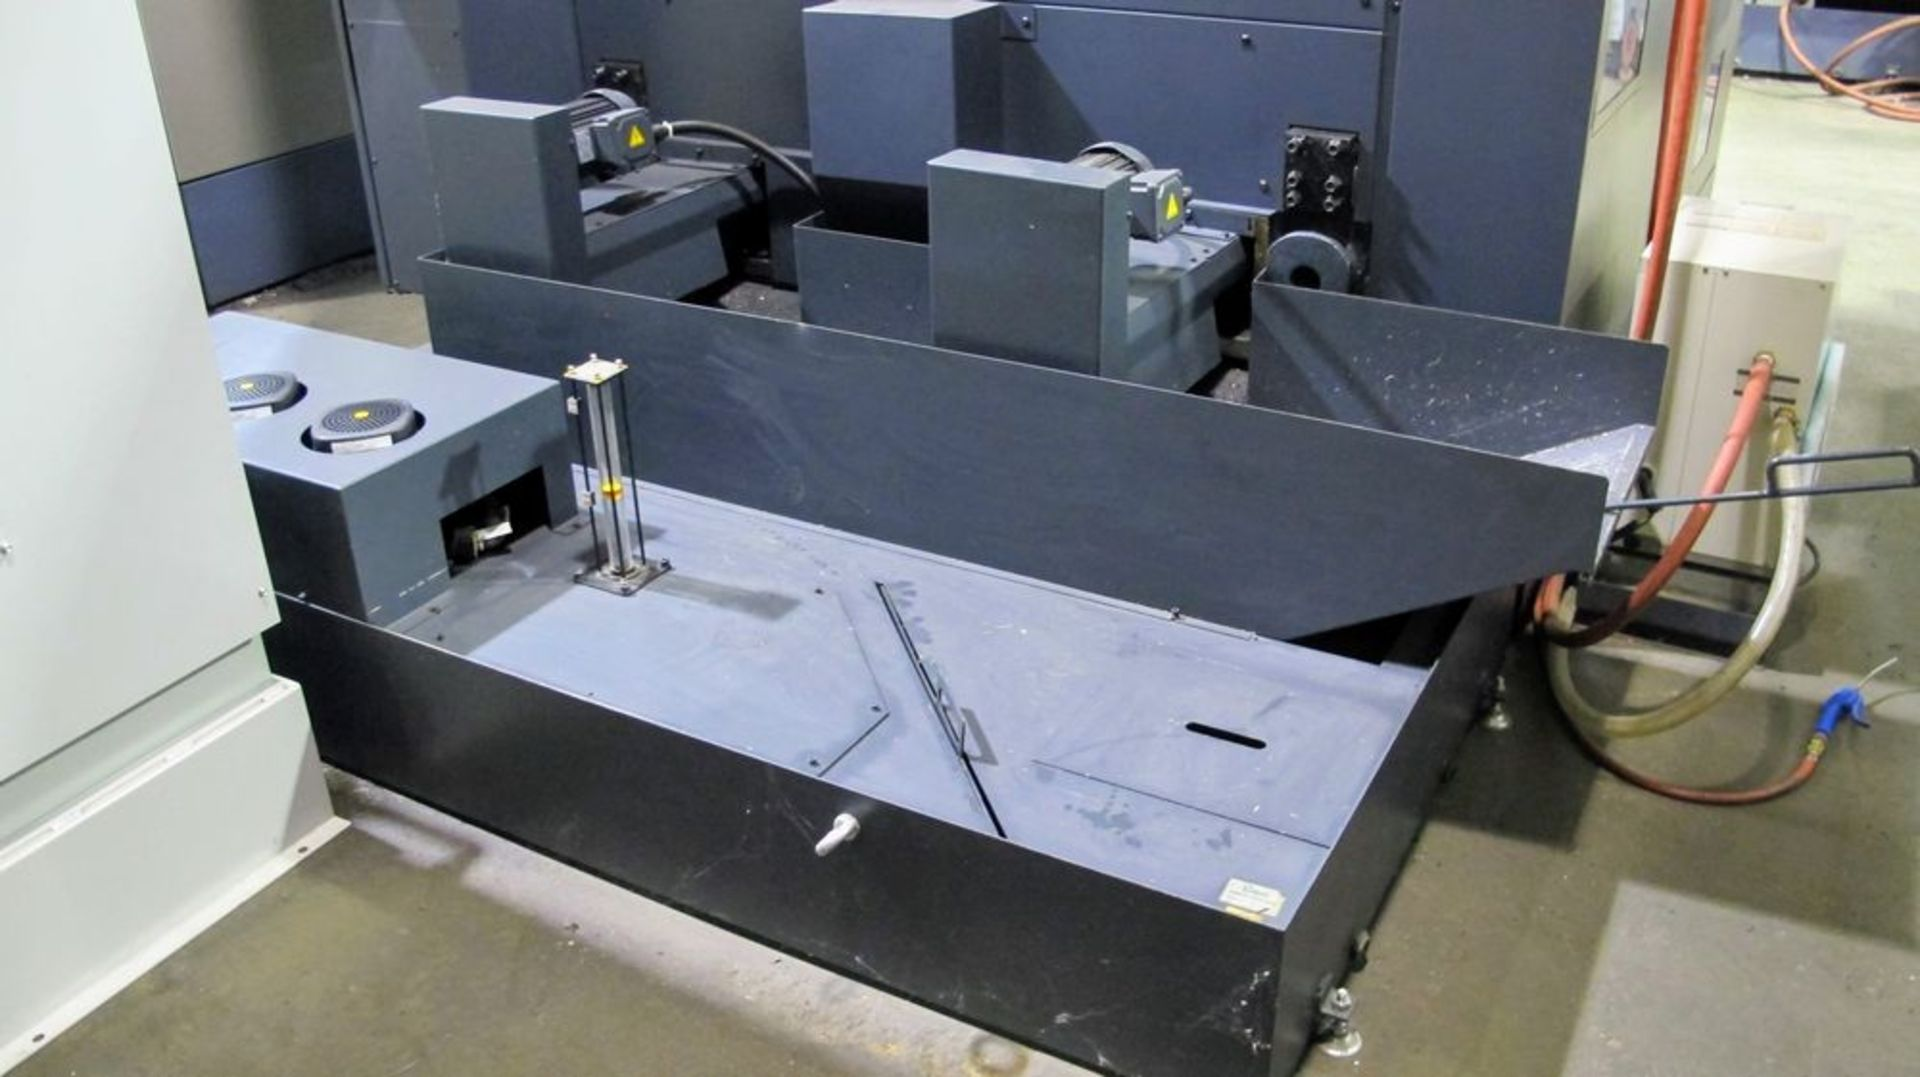 """Lot 8 - 2015 MAKINO F5 CNC Vertical Machining Center, s/n V150851 (7,686 Spindle Hrs), 20"""" x 40"""" Table ("""